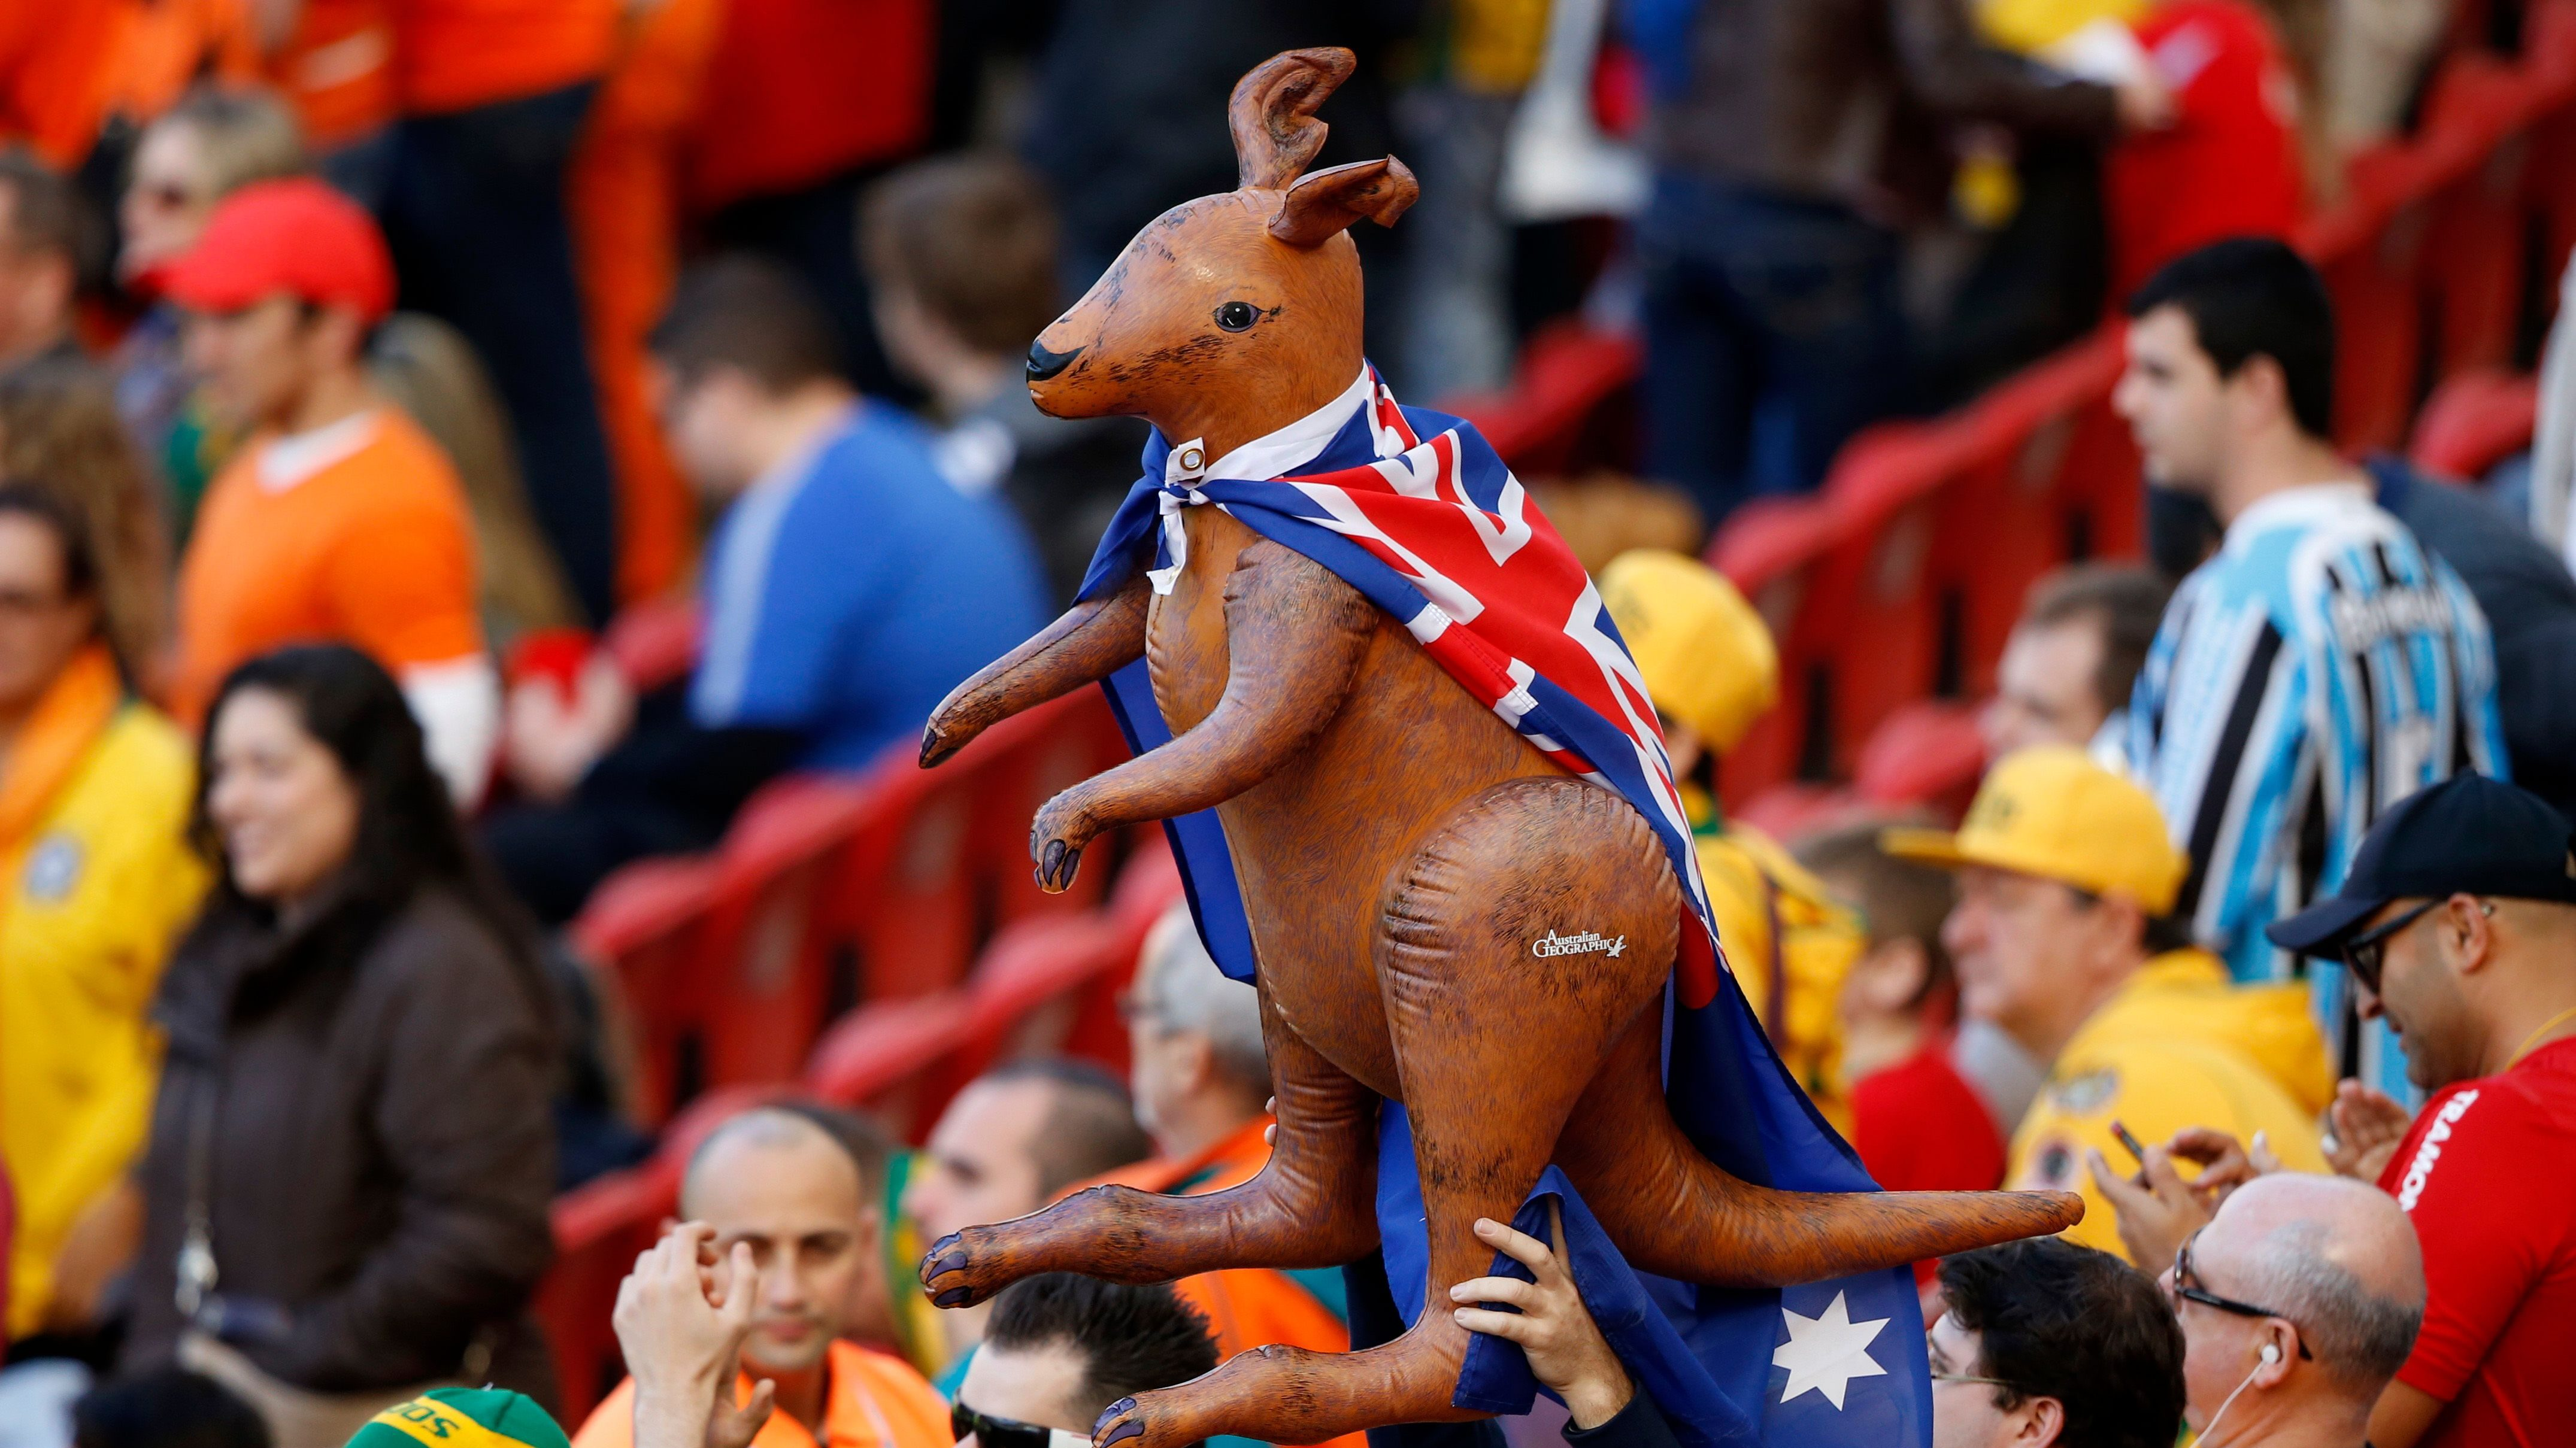 Australia fans hold an inflatable kangaroo wearing an Australia flag before the team's 2014 World Cup Group B soccer match against Netherlands at the Beira Rio stadium in Porto Alegre June 18, 2014. REUTERS/Marko Djurica (BRAZIL - Tags: SOCCER SPORT WORLD CUP) - TB3EA6I1AUN3B